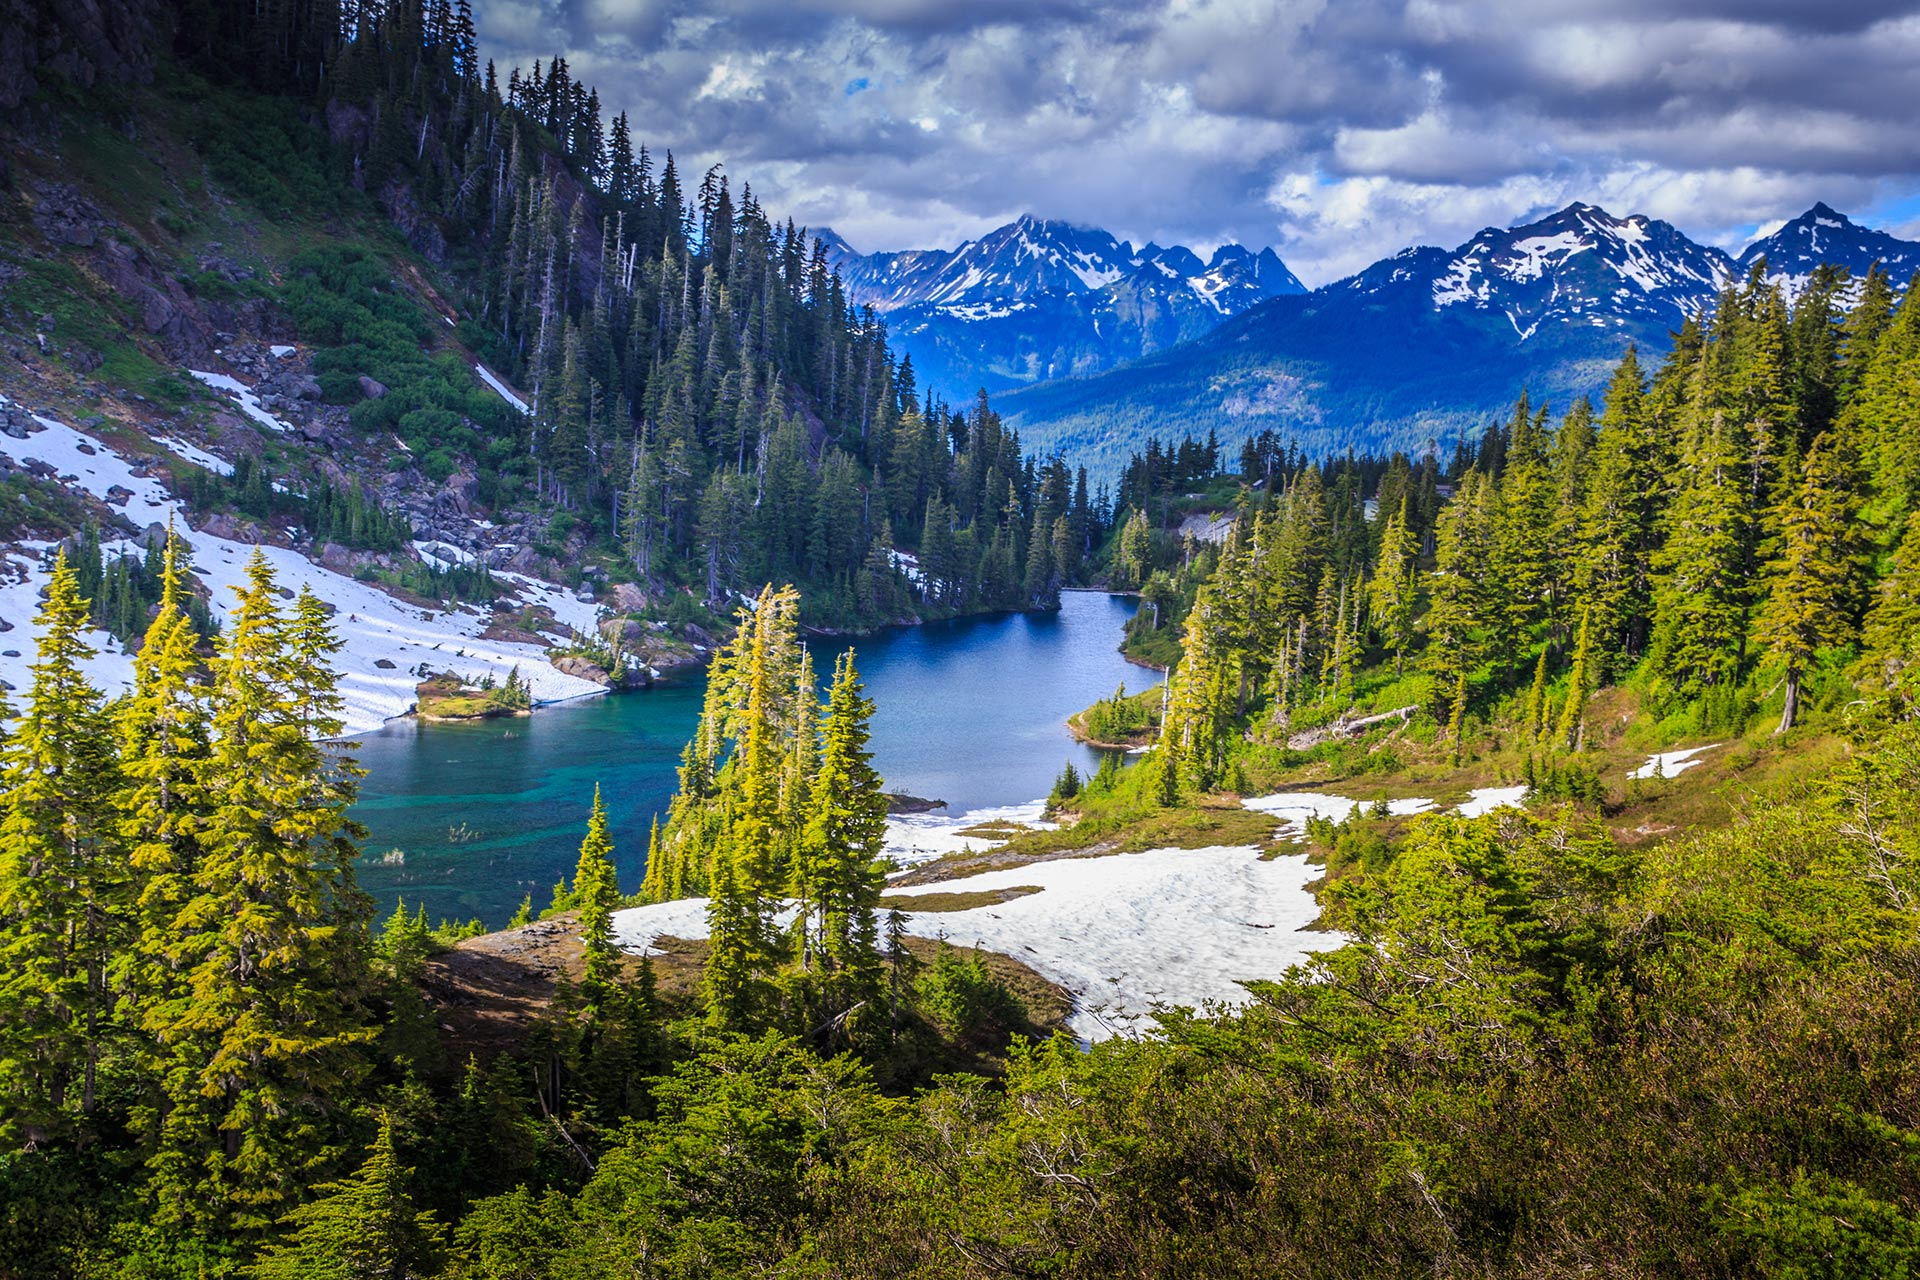 Glacier National Park in Montana, USA.